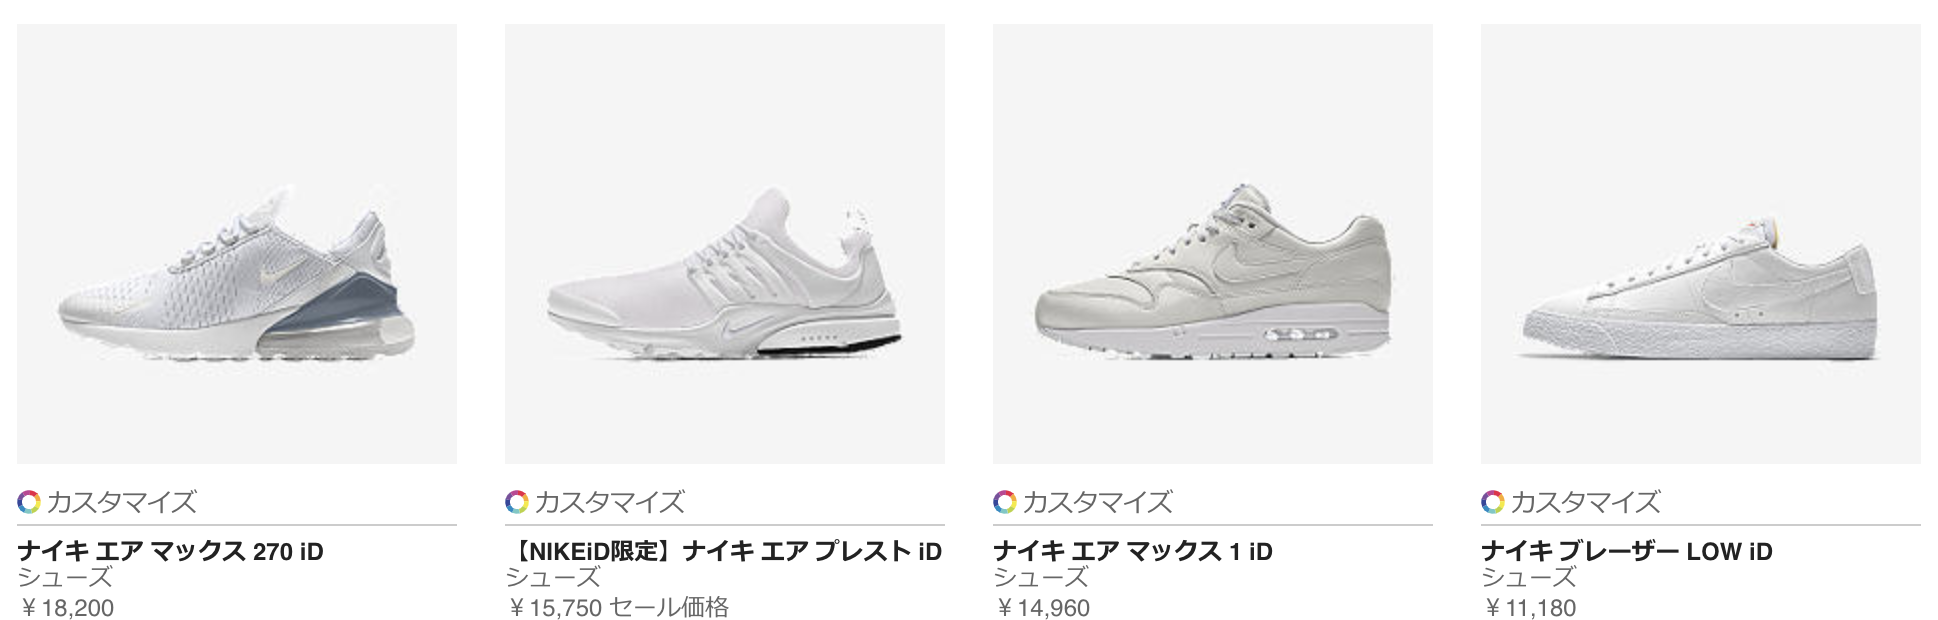 Nike By You 旧NIKEiD